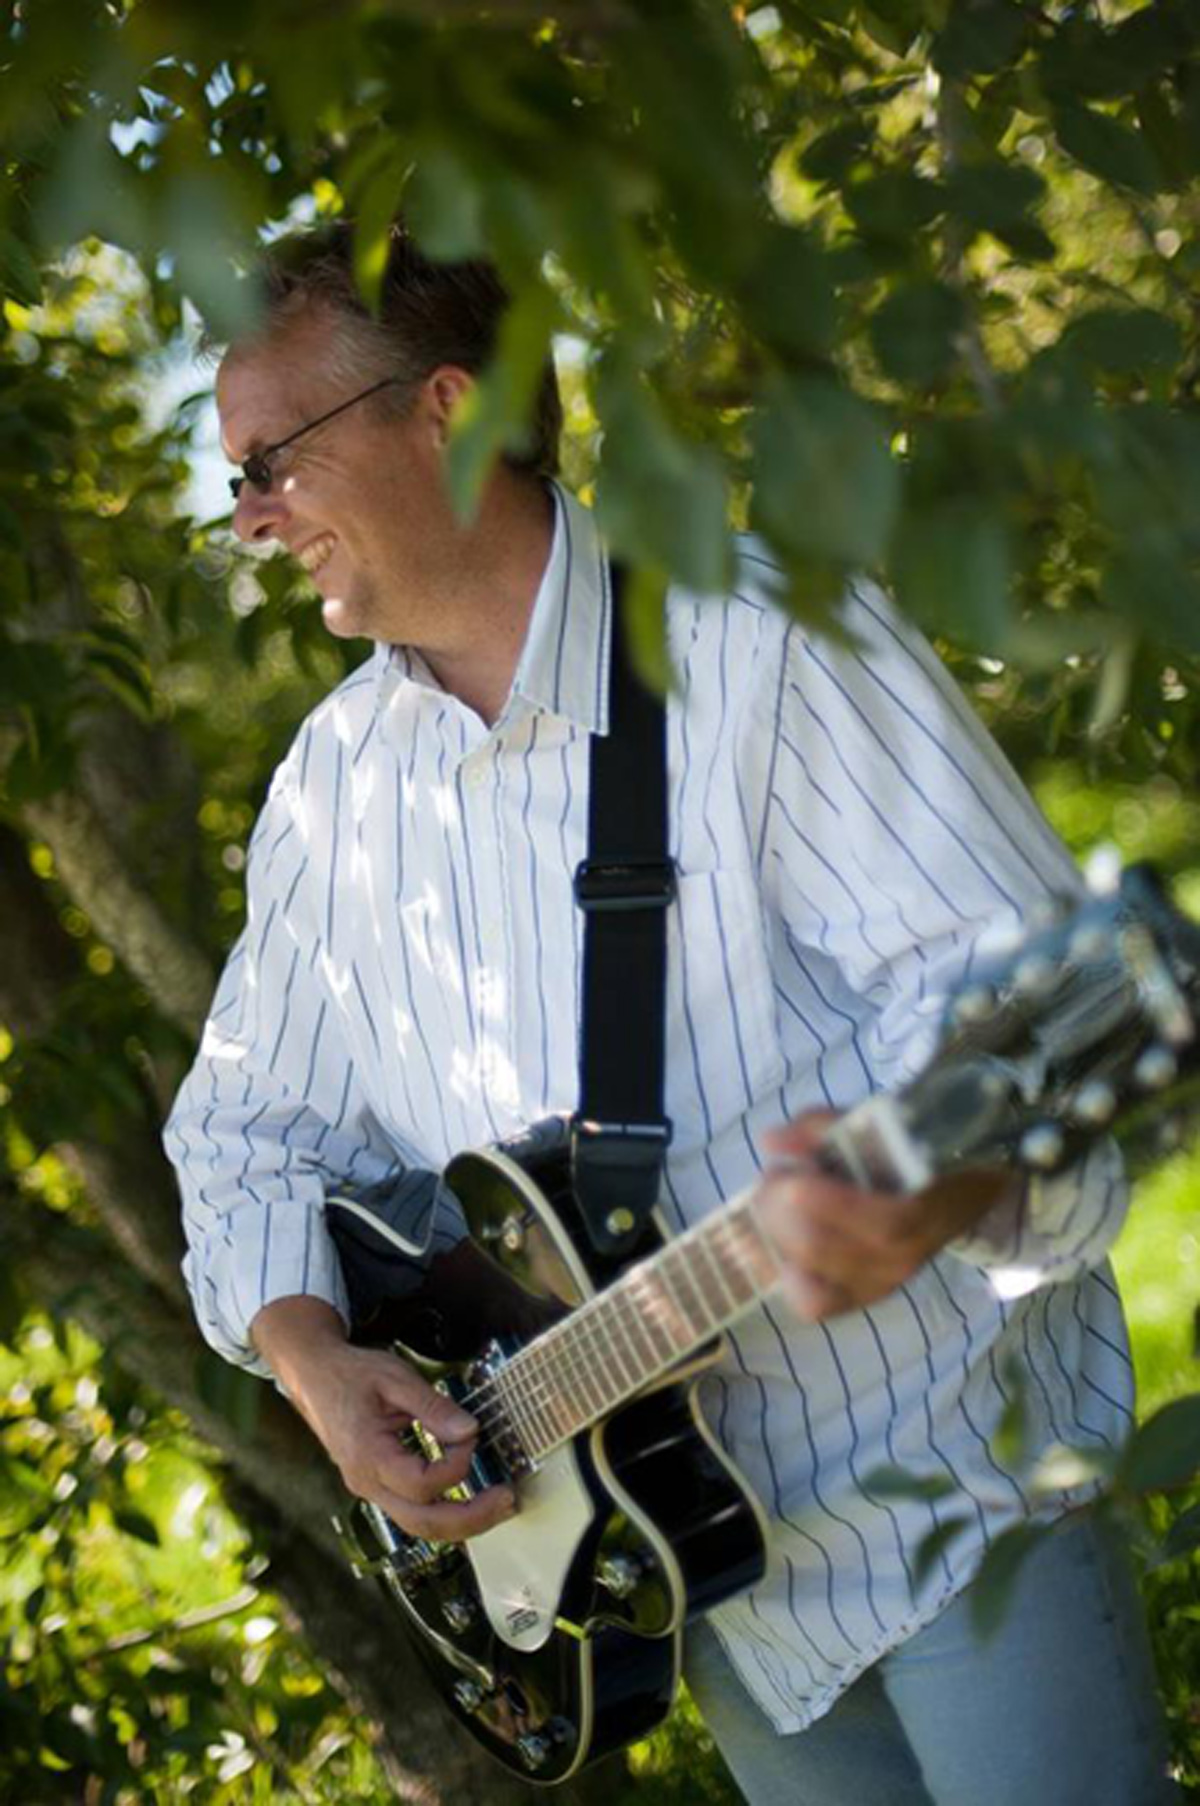 A genre unto himself: Opening for Christopher Cross is the next big gig for versatile troubadour Mark Holt